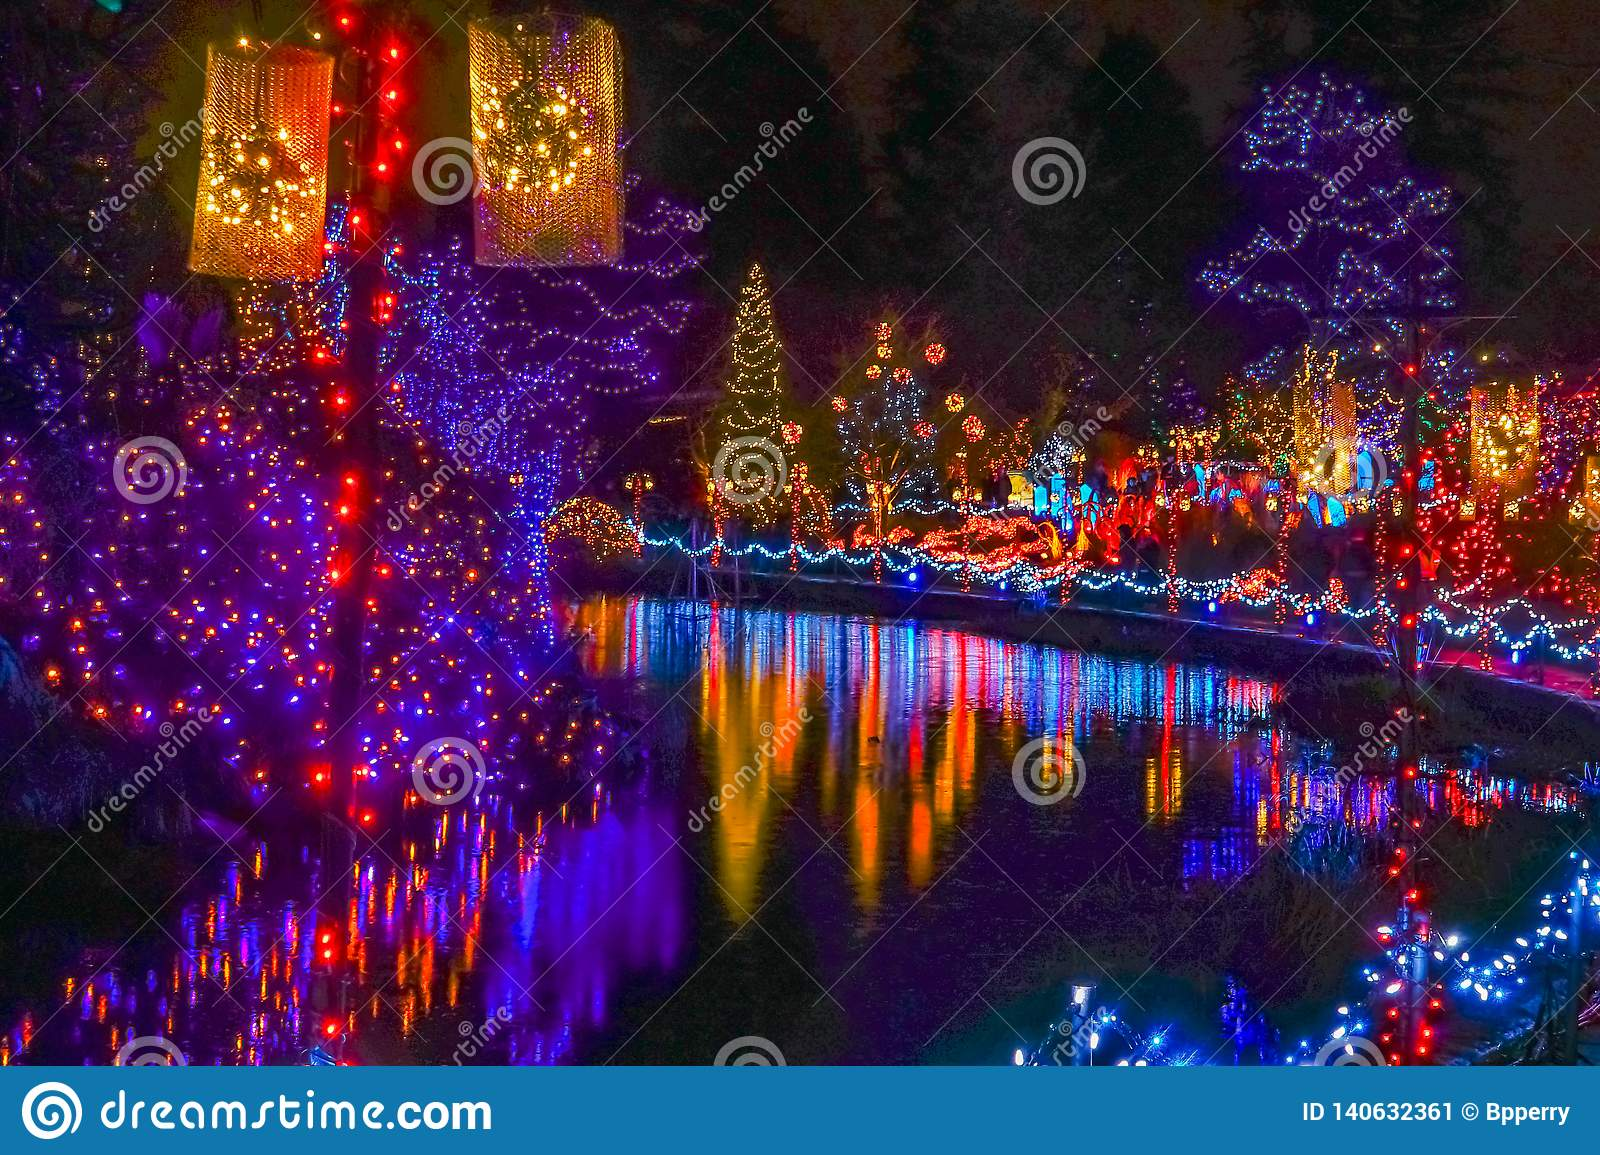 Colombian Vancouver Wa Christmas Lights 2021 1 324 Christmas Vancouver Photos Free Royalty Free Stock Photos From Dreamstime